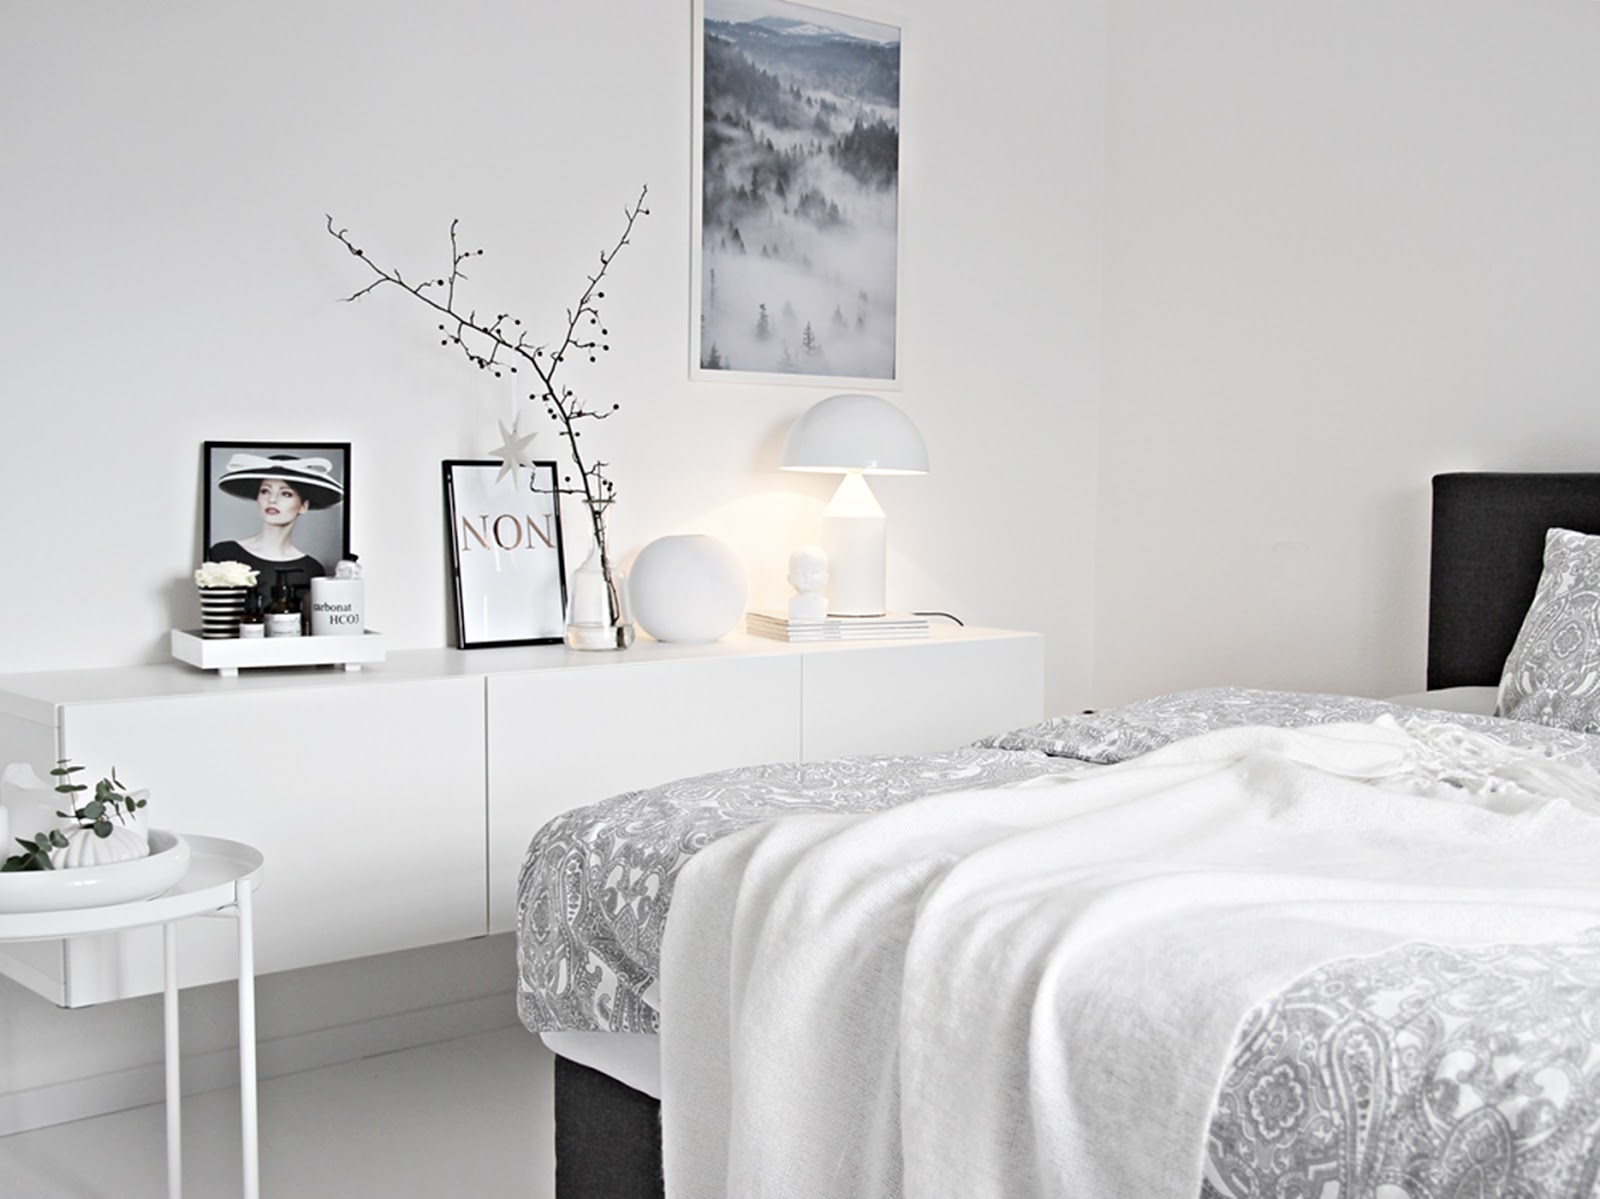 live simply mein schlafzimmer im neuen look mit liebe zum detail. Black Bedroom Furniture Sets. Home Design Ideas